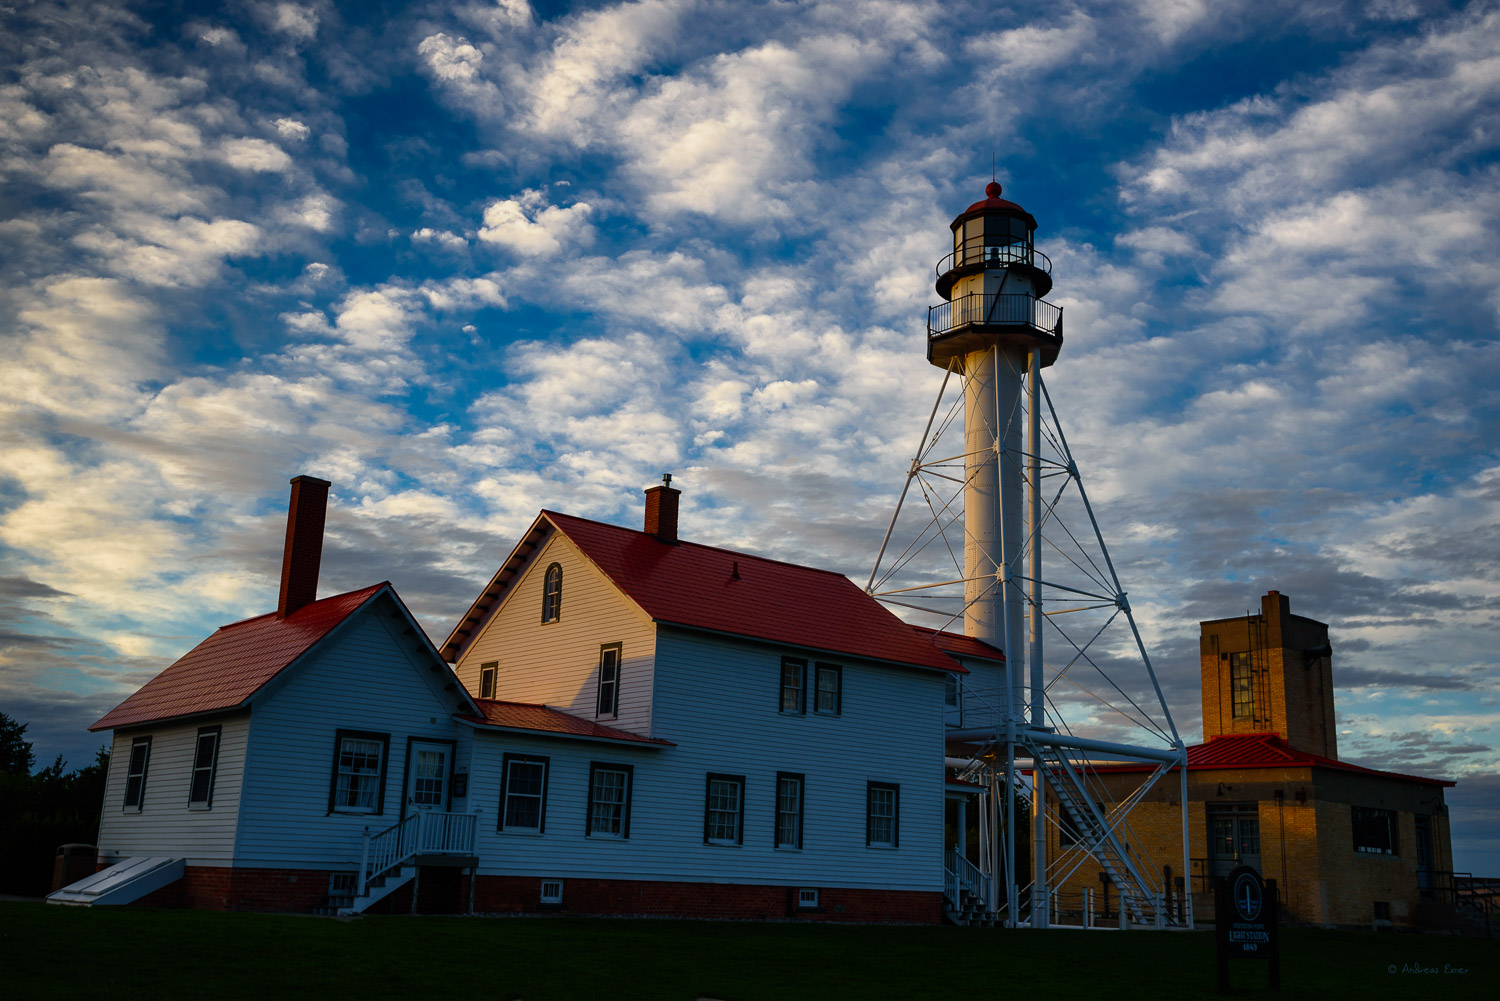 Whitefish Point Light, Lake Superior, Michigan